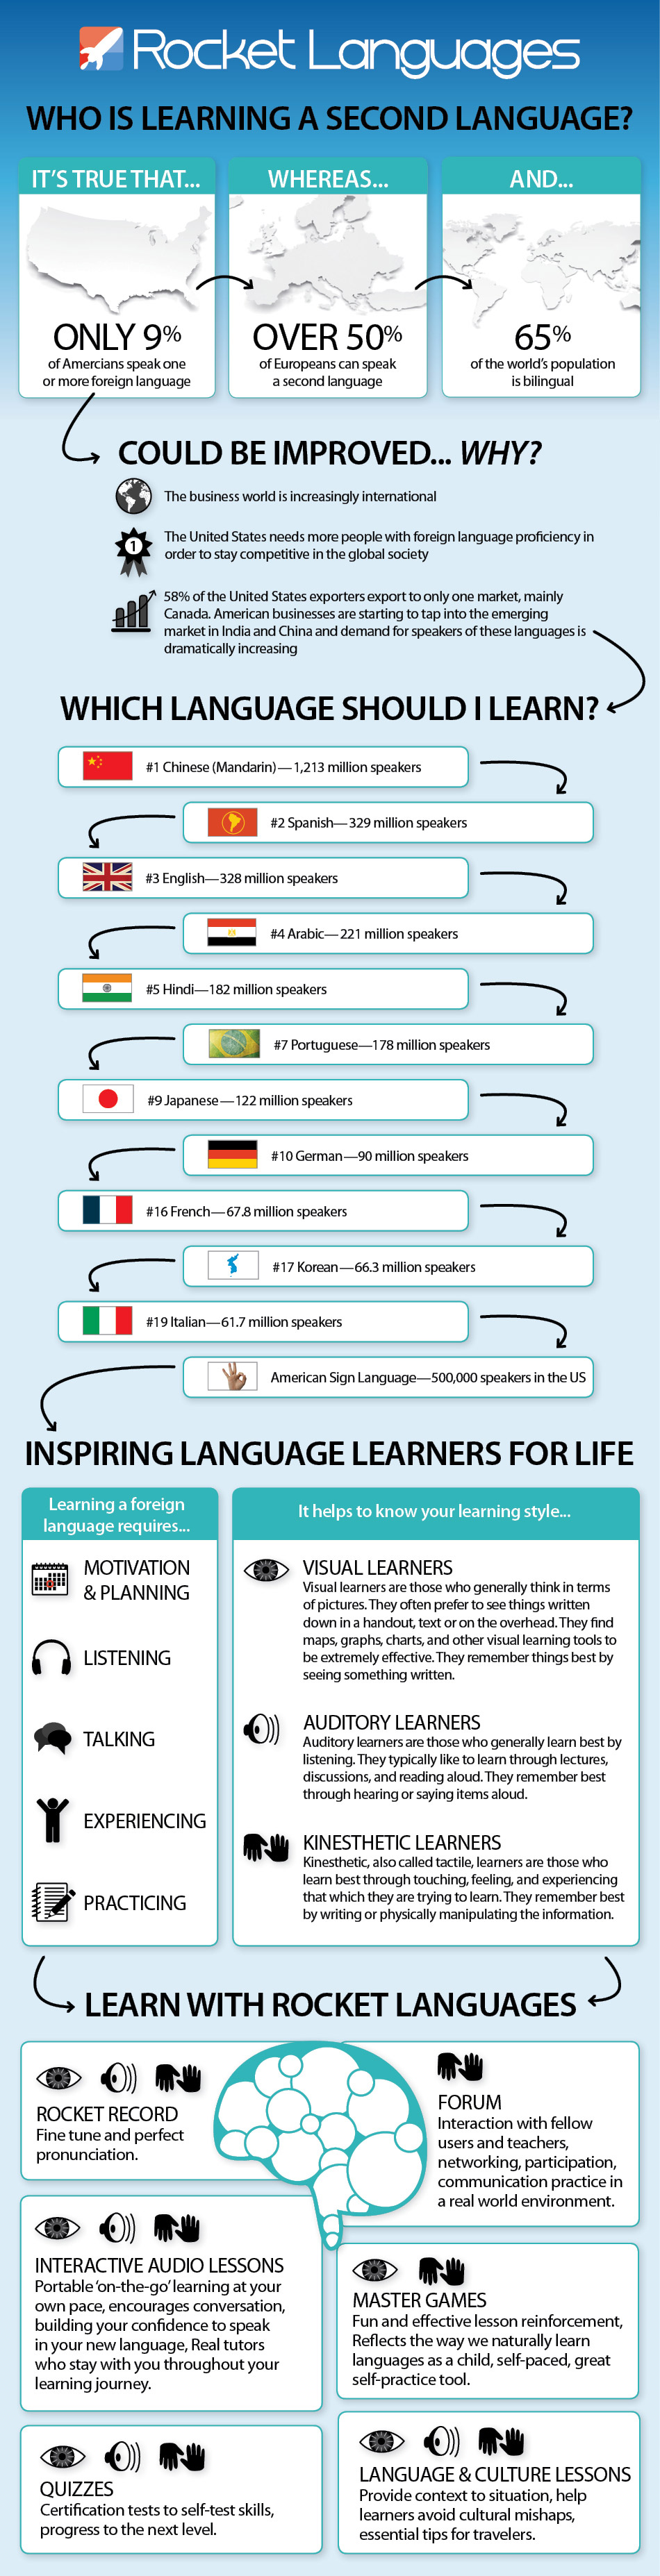 Best Language Courses in 2020